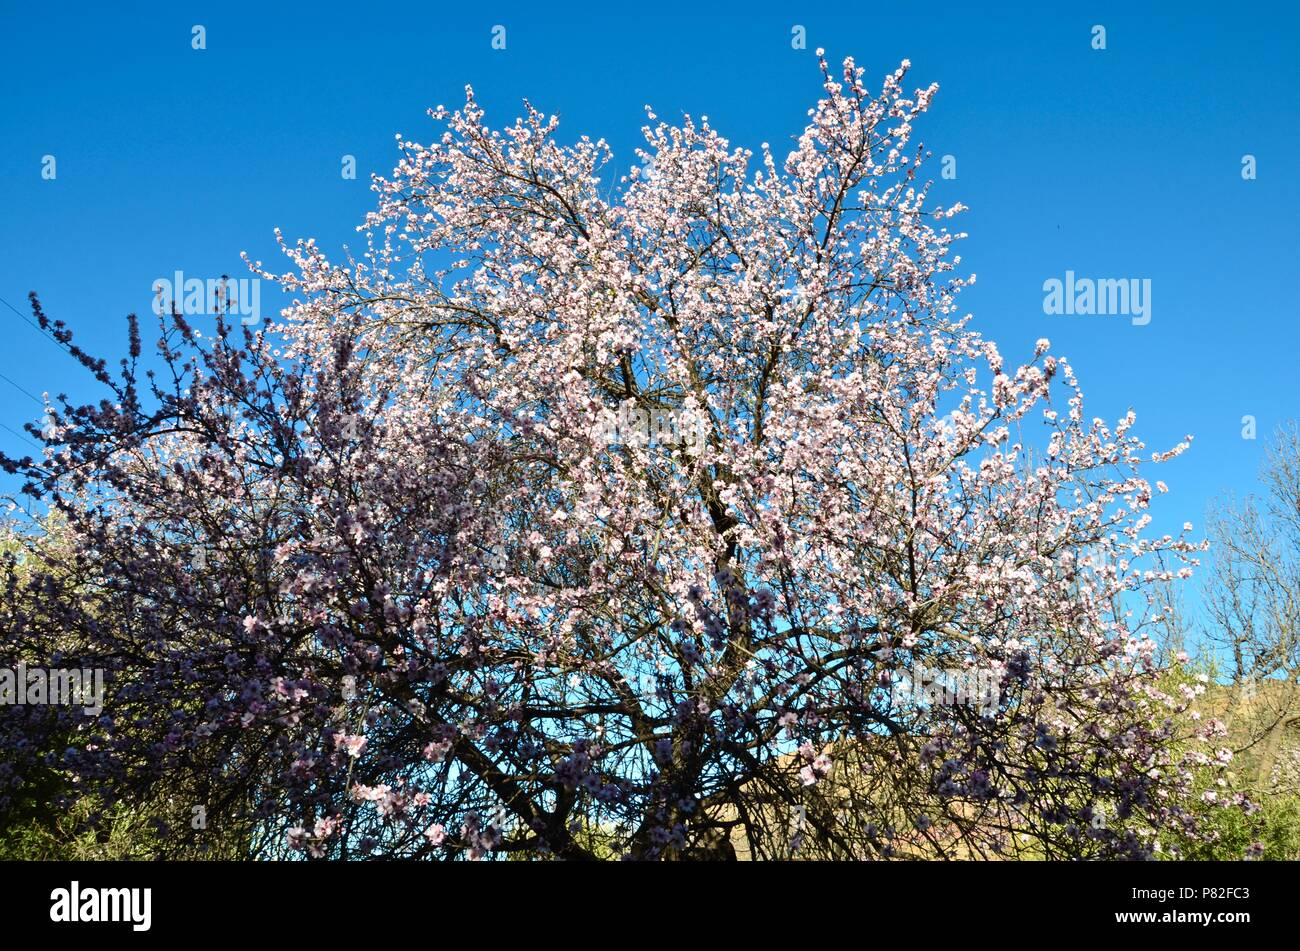 Almond blossom in the Atlas mountains in Morocco, almonds, nuts, trees, nature, desert landscape, hilly, almond oil, argan oil, sun, seasonal - Stock Image